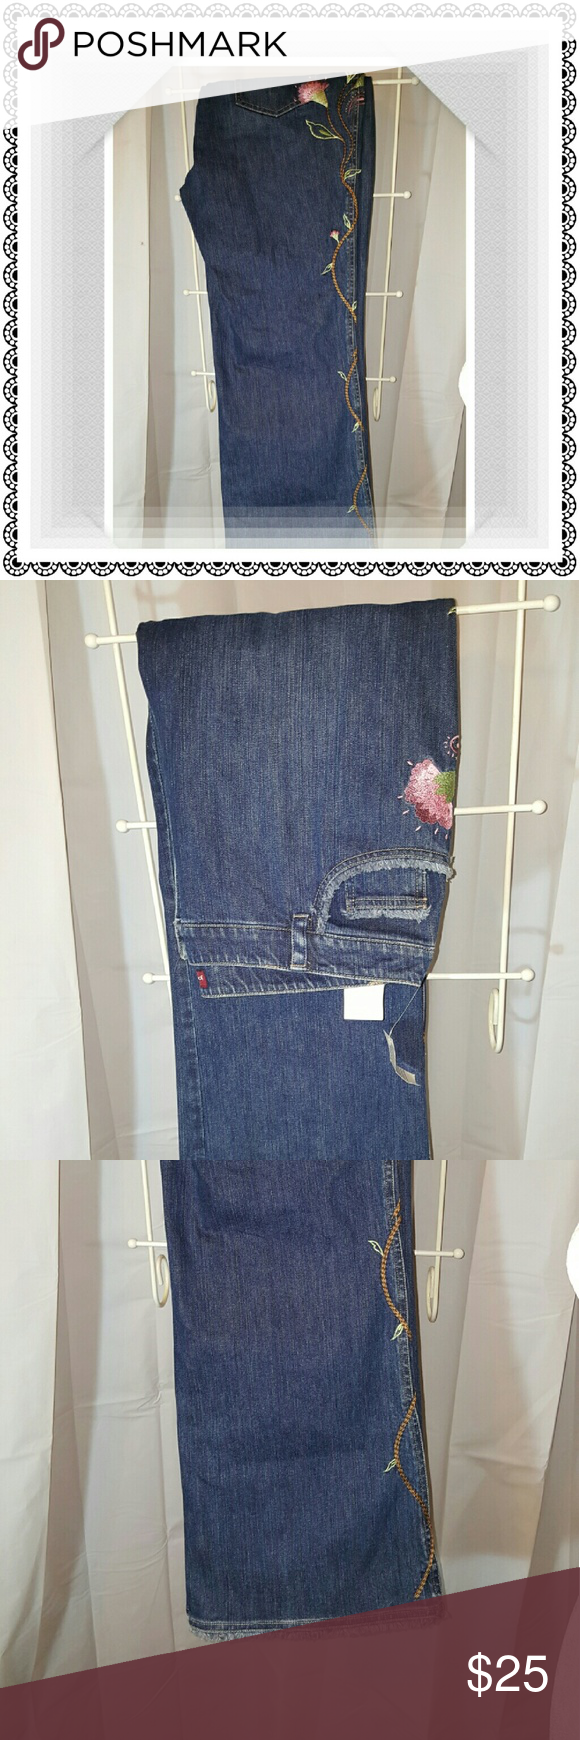 Flower embroidered jeans NWT | Pinterest | Jean jean, Size 16 and ...